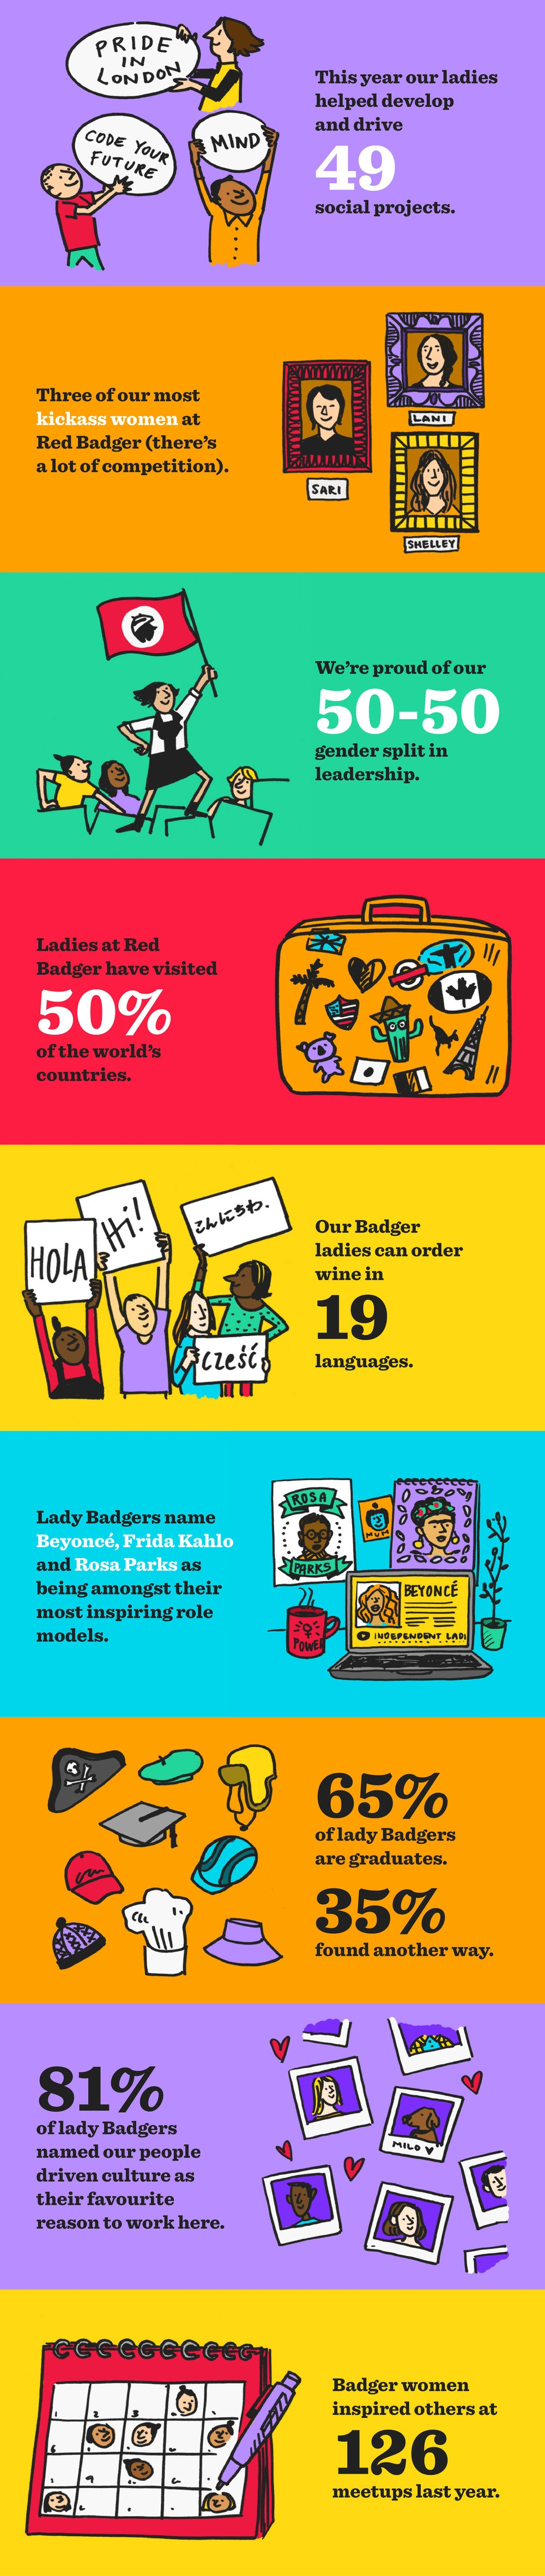 A row of illustrations with short but wonderful facts about the female badgers